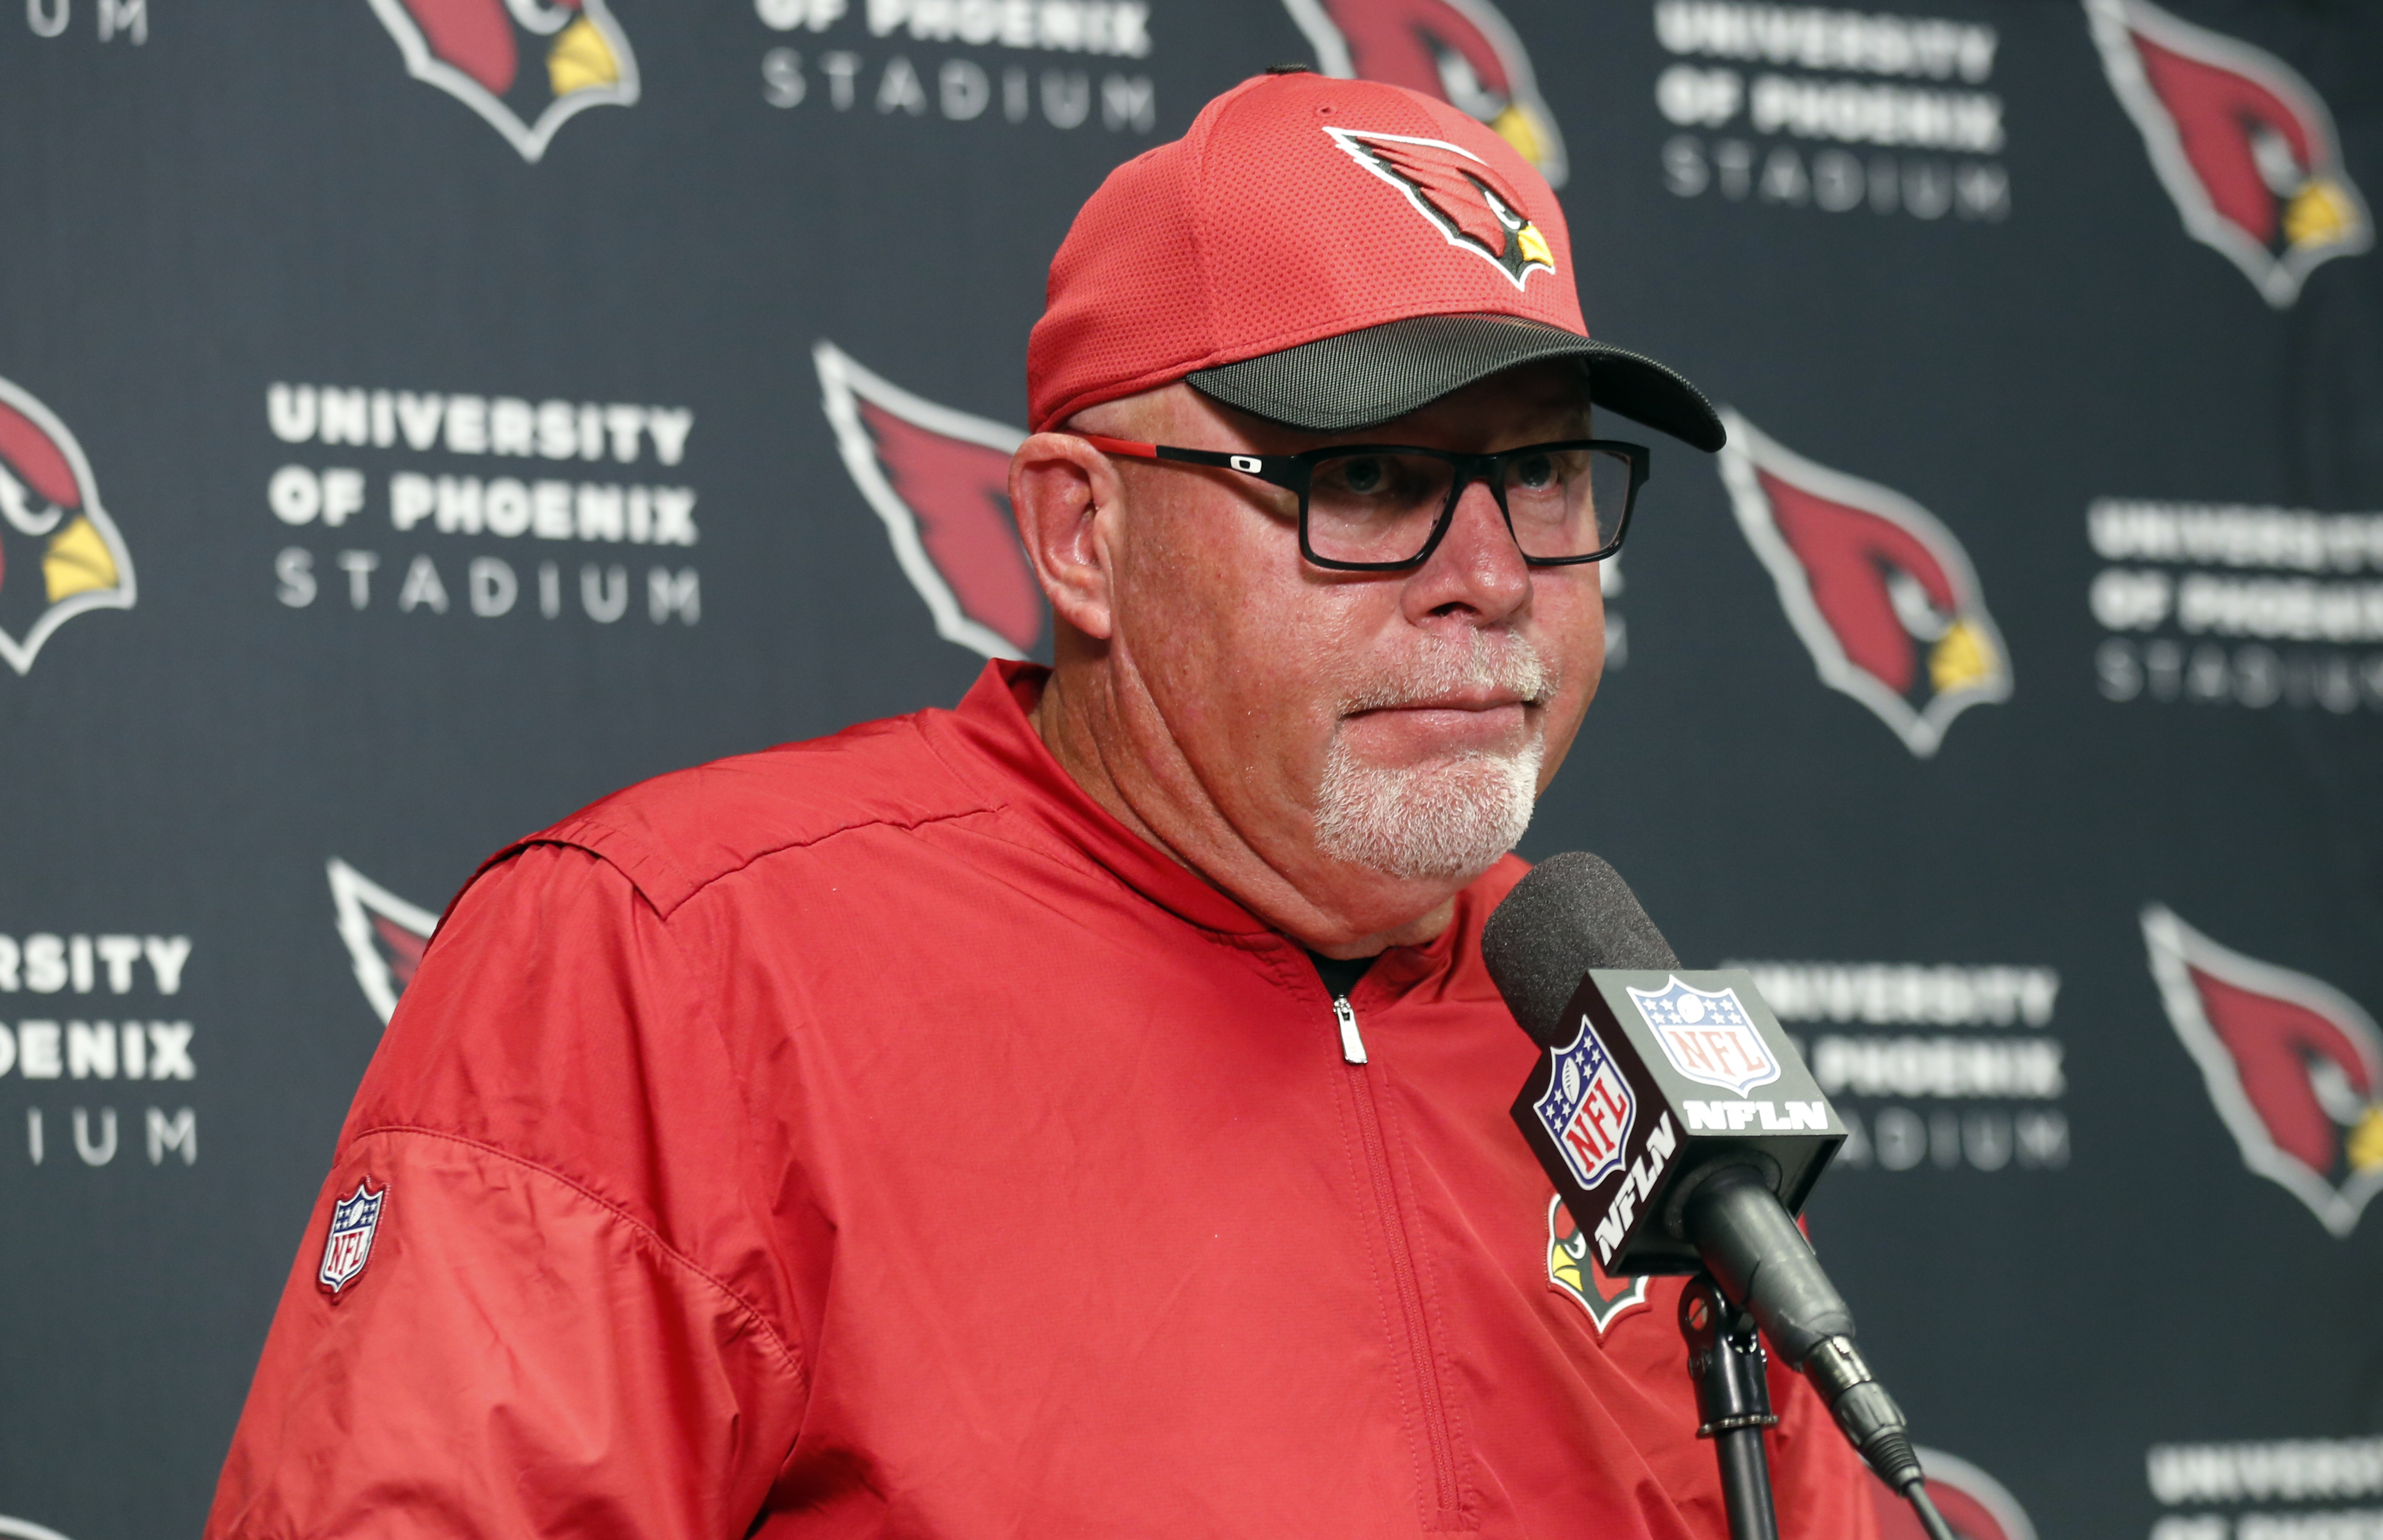 FILE - In this Sunday, Nov. 20, 2016, file photo, Arizona Cardinals head coach Bruce Arians speaks during a news conference after a 30-24 loss to the Minnesota Vikings in an NFL football game, in Minneapolis. Arians was back at work on Tuesday after a bri